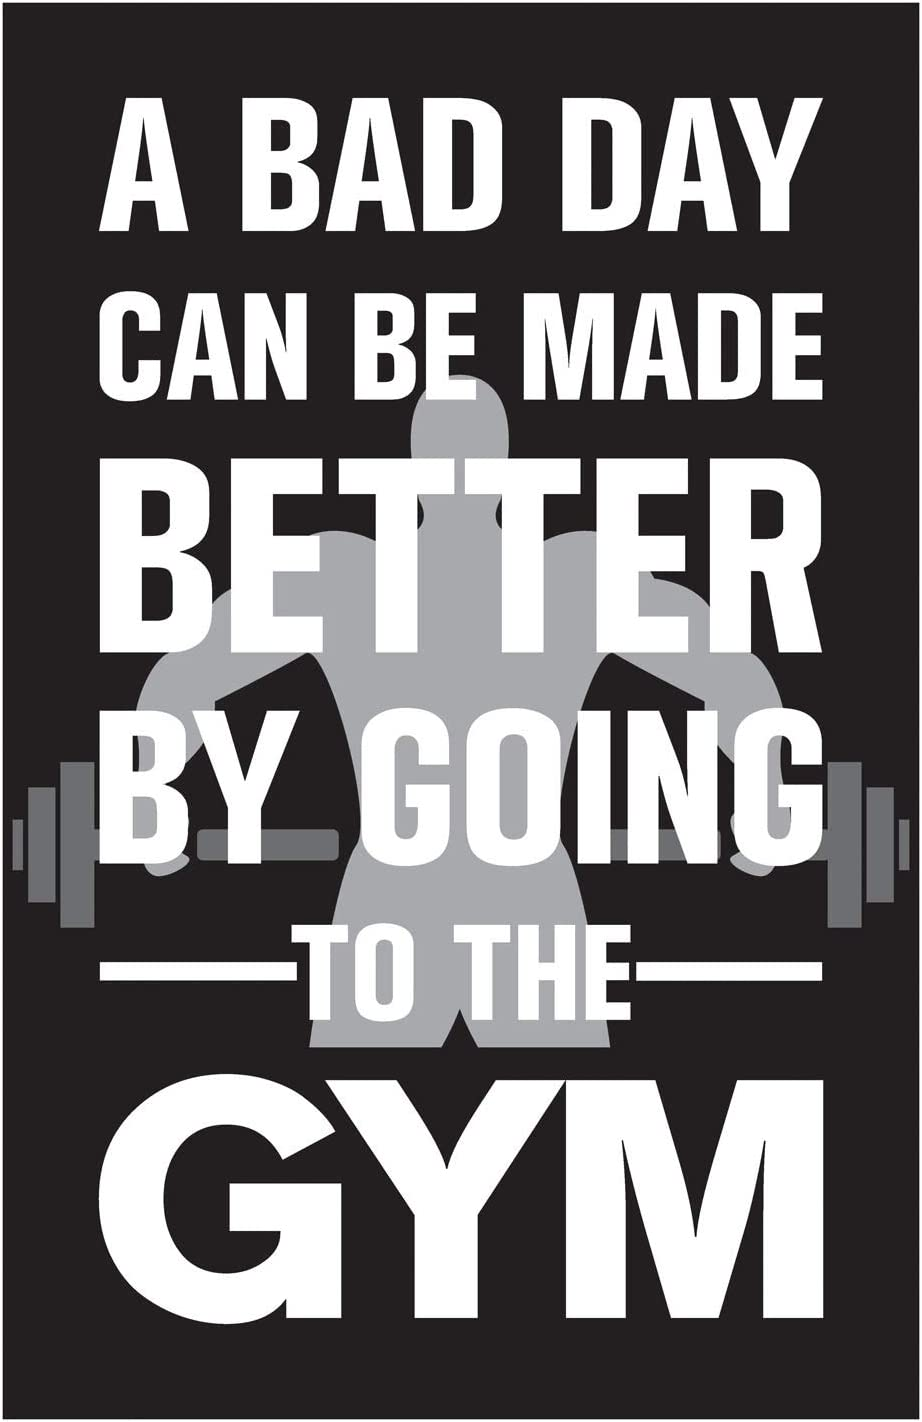 Amazon Com Inephos Gym Fitness Quotes Poster Art Gym Motivation Posters Size 24 Inch X 36 Inch Large Laminated Vinyl Print Posters Prints